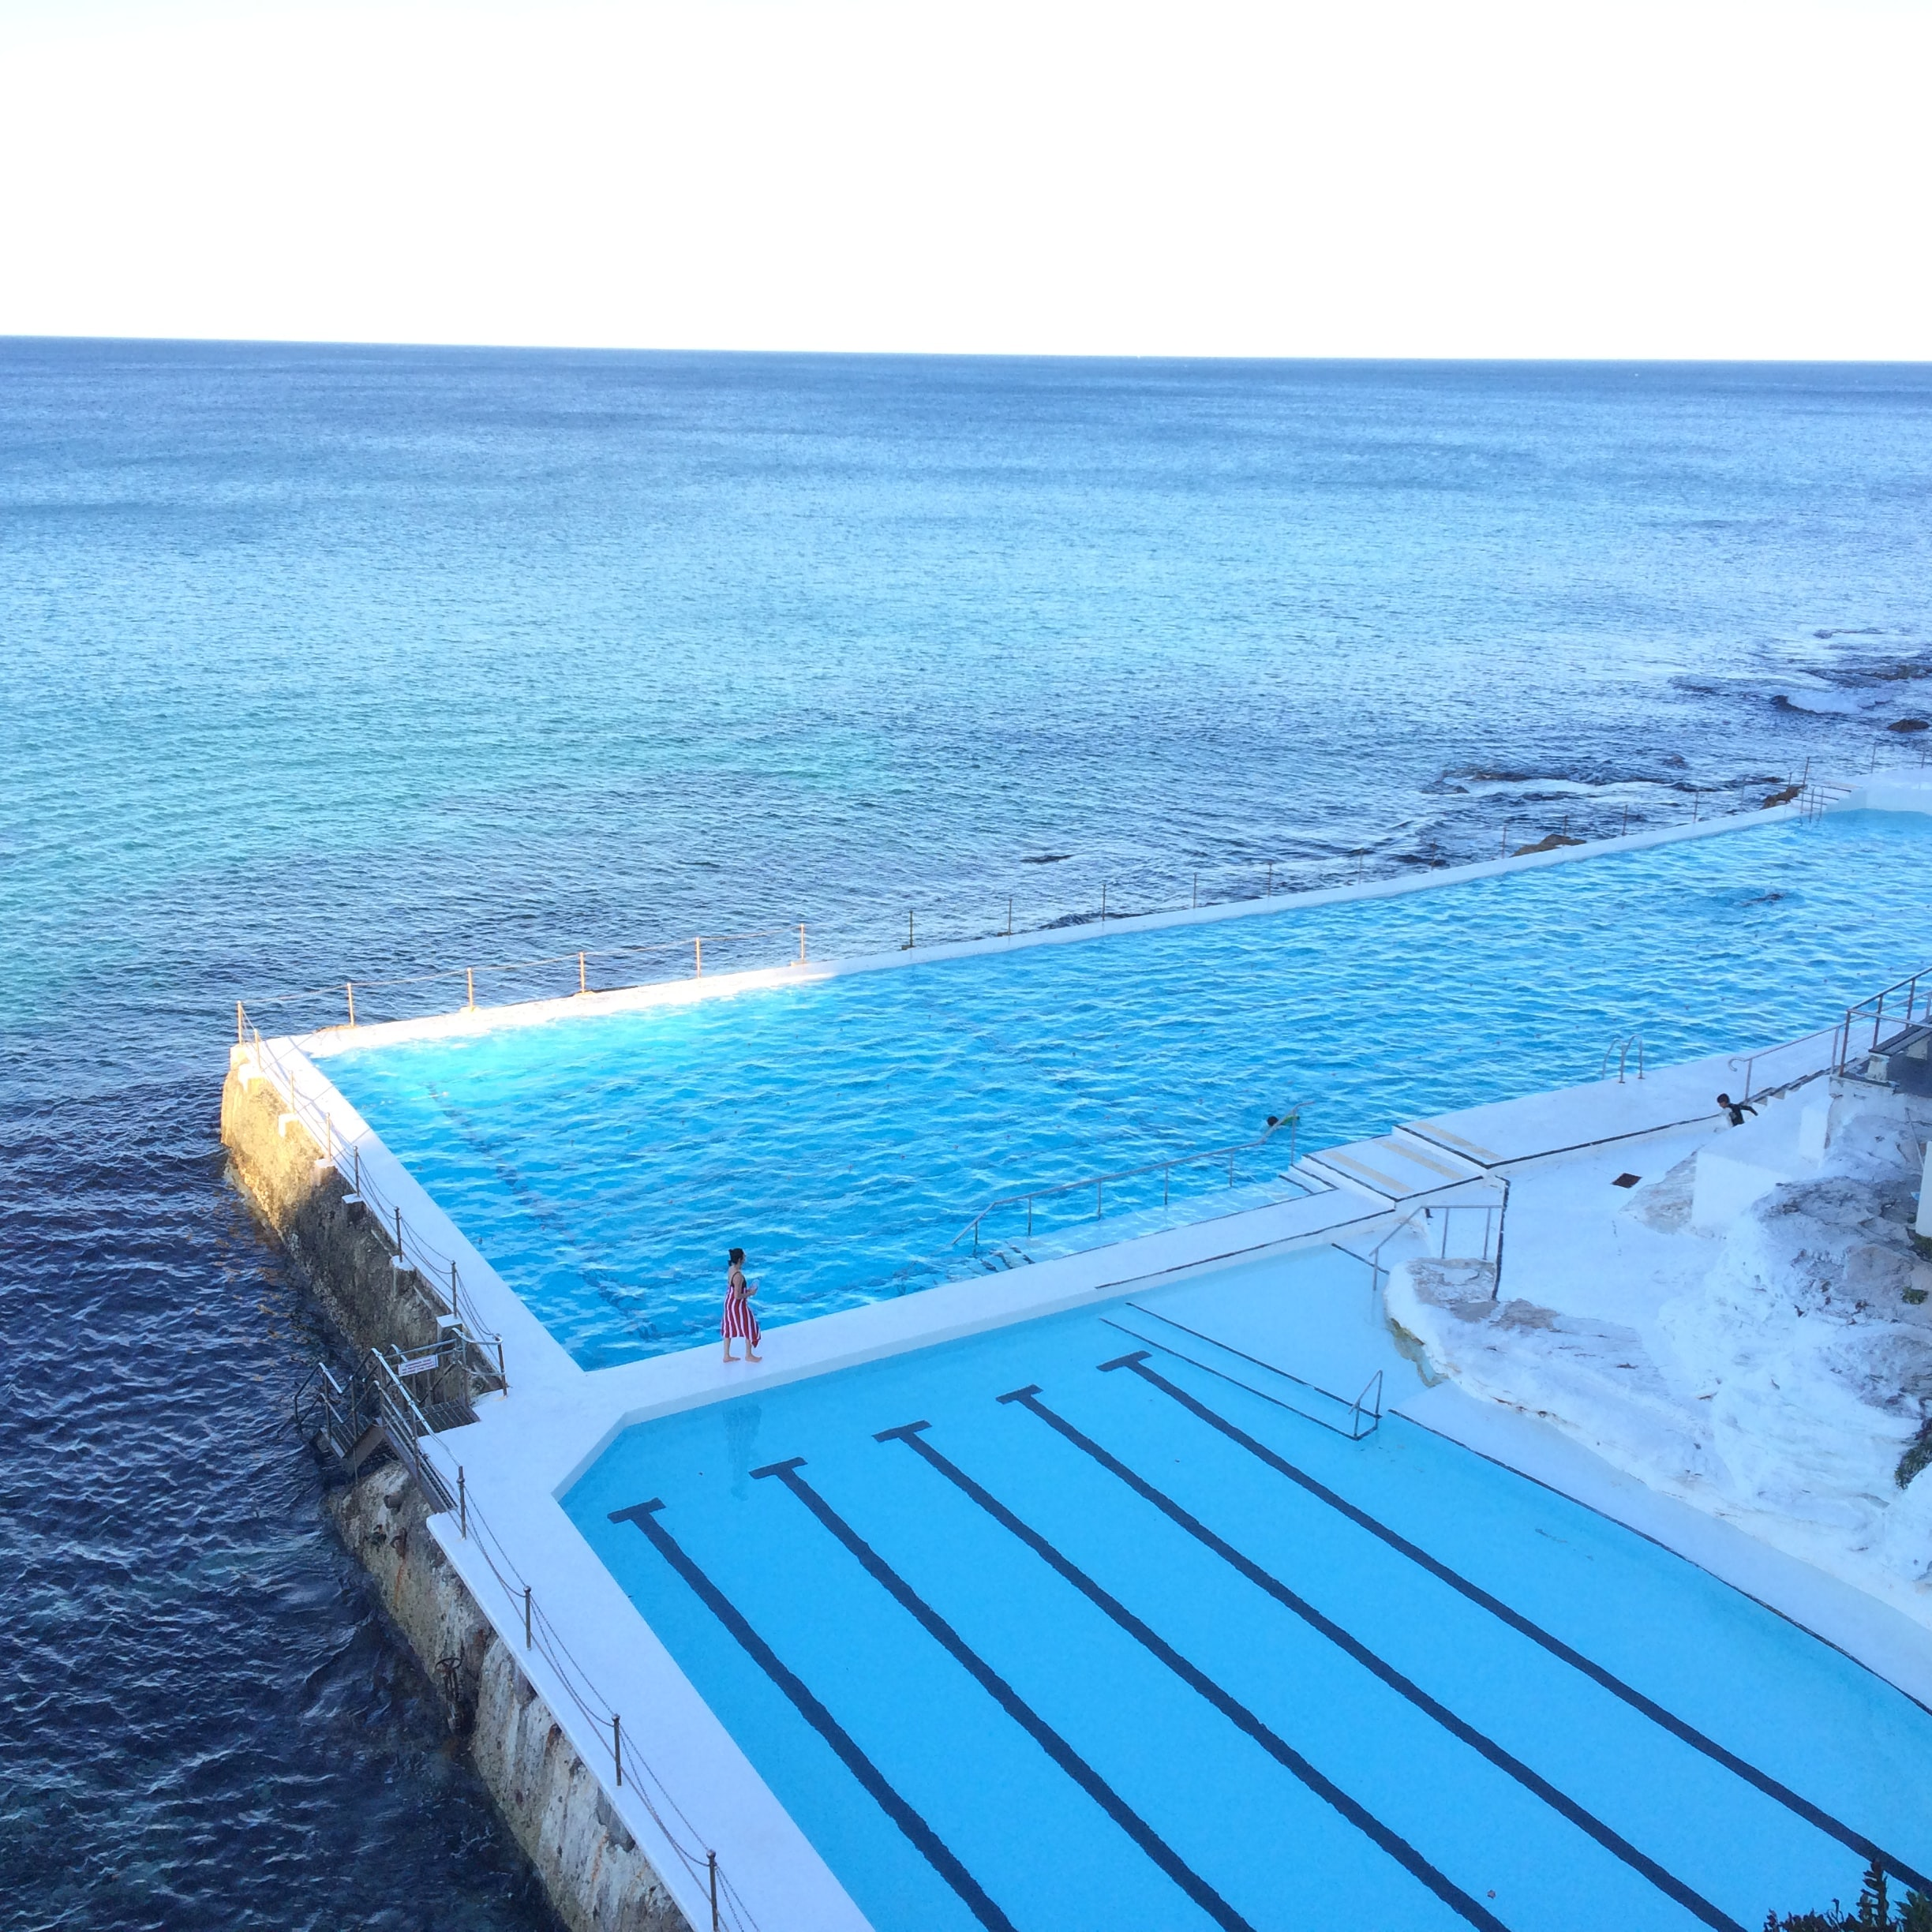 Two swimming pools on the ocean coast at Bondi Beach